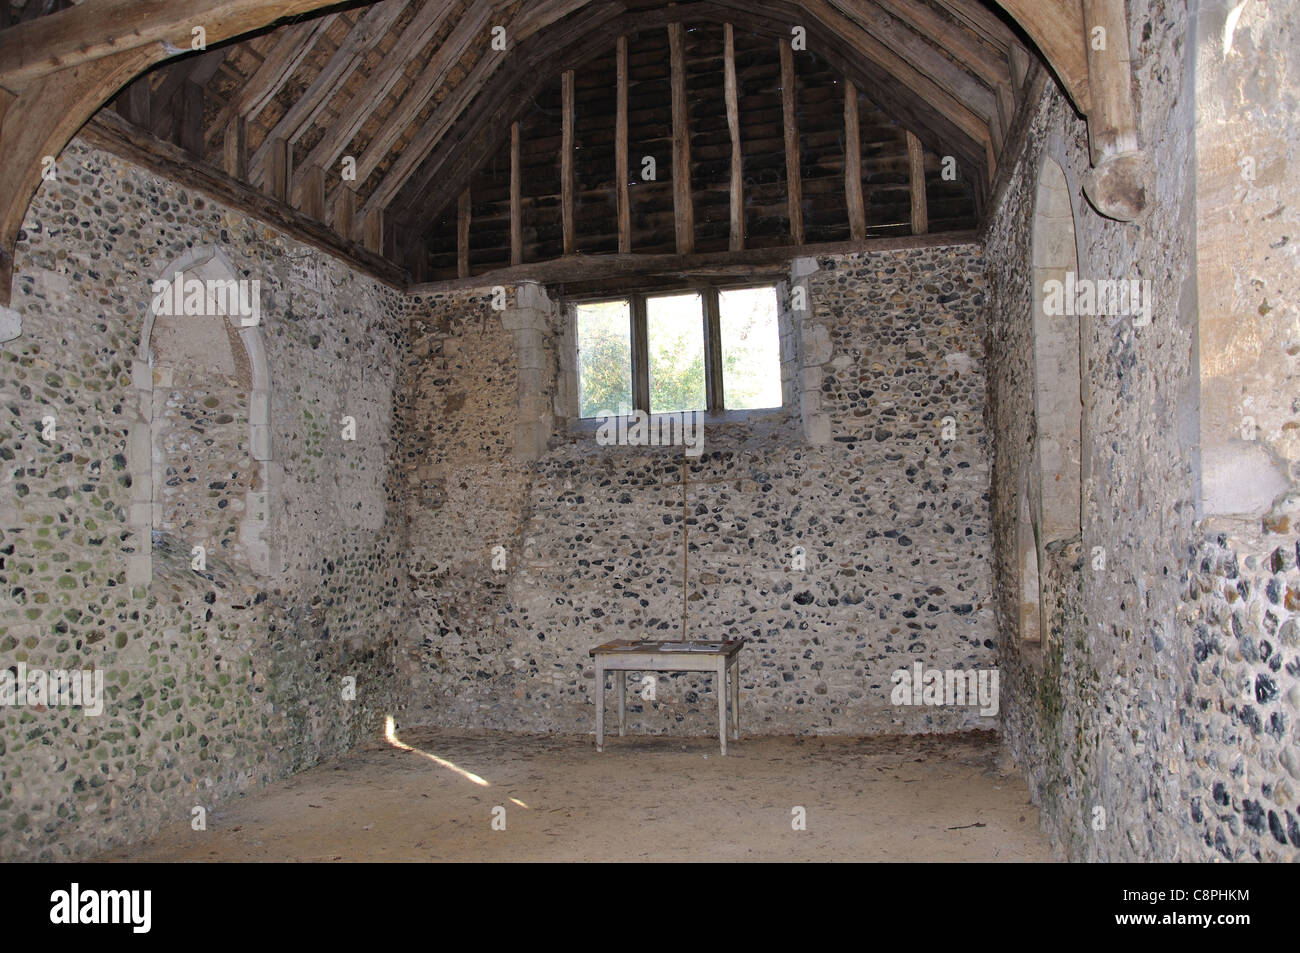 13th century St.James's Chapel, Lindsey, Suffolk, England, United Kingdom - Stock Image